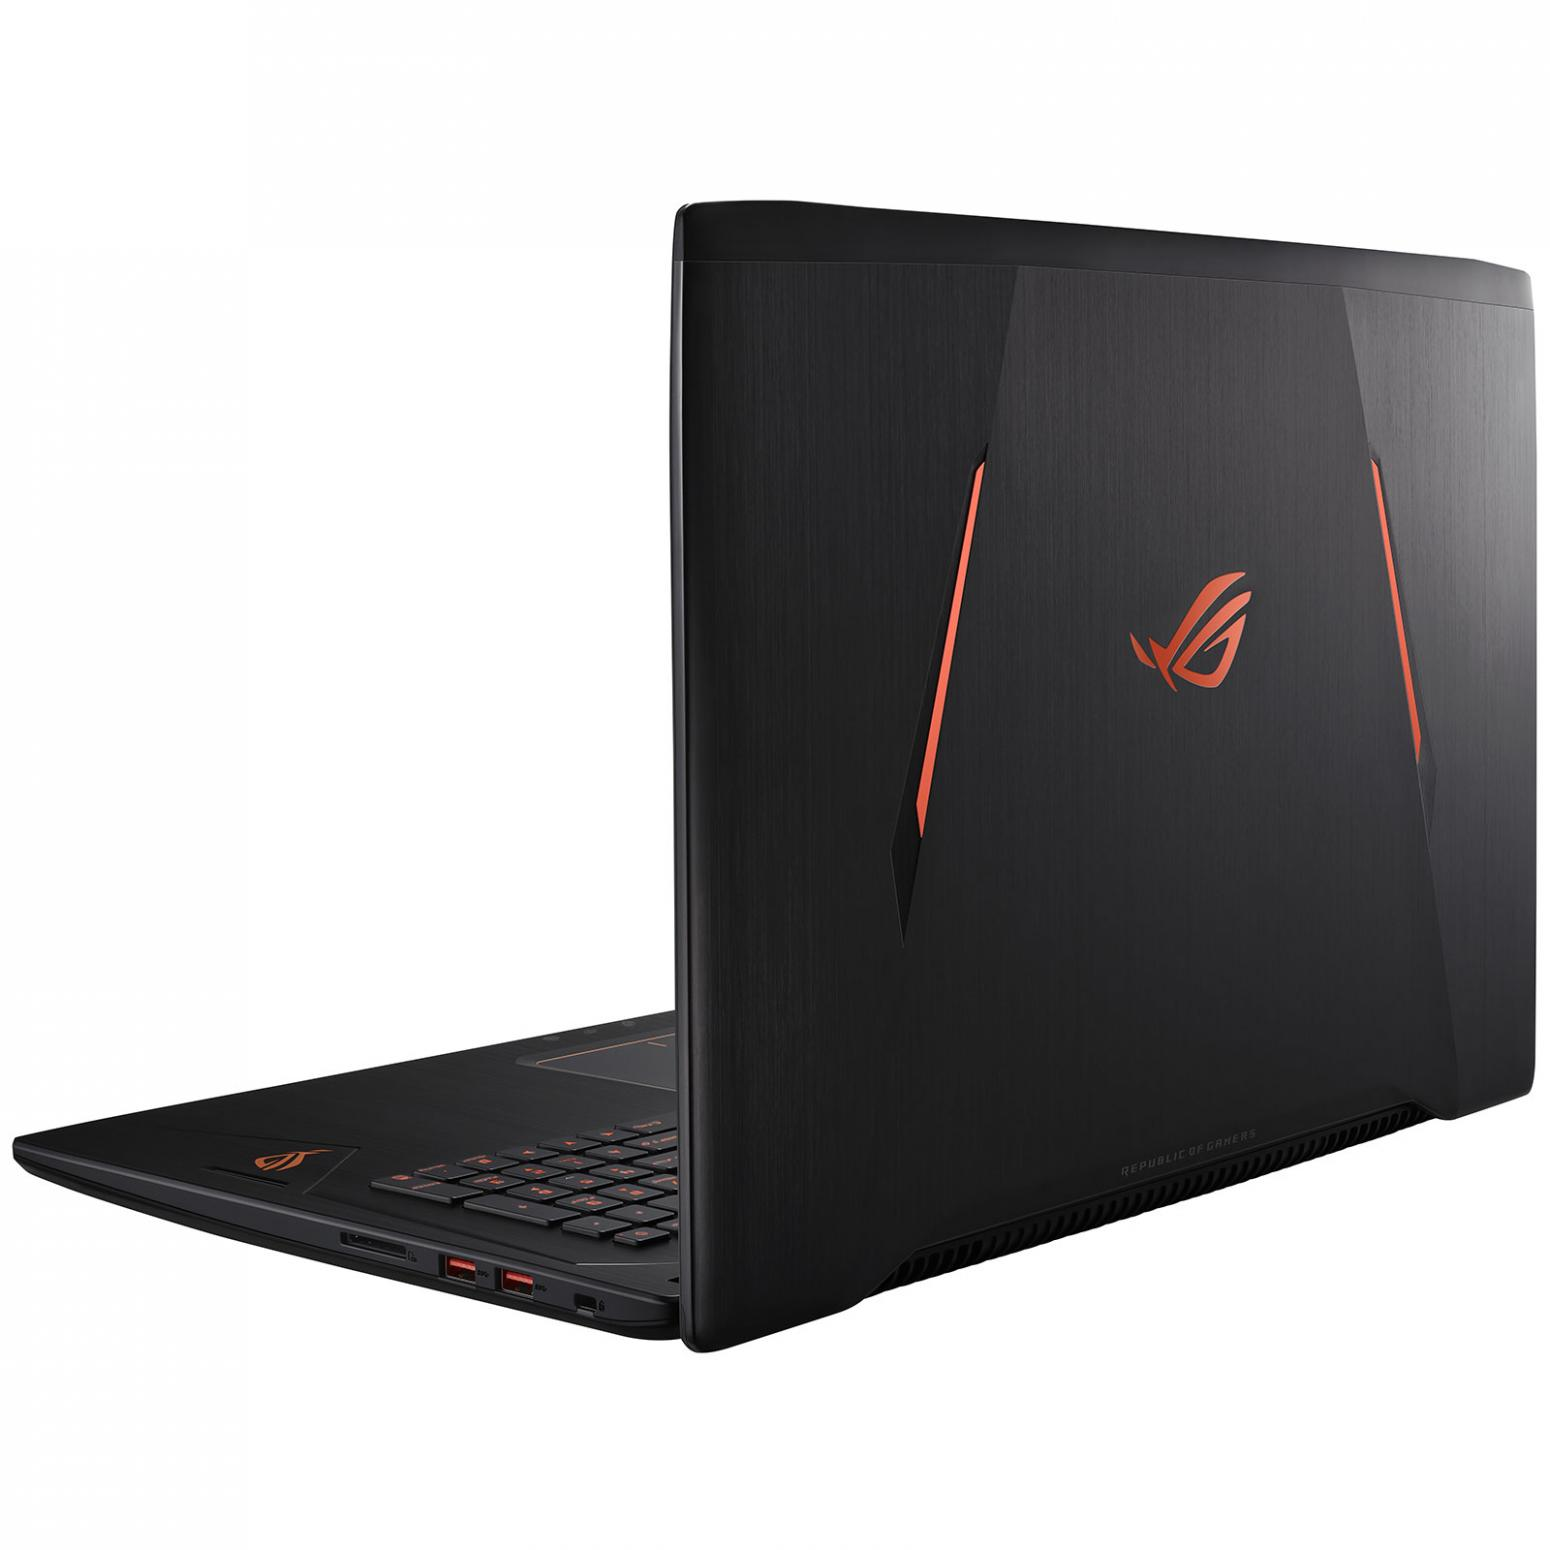 Ordinateur portable Asus ROG G702VM-GC072T - GTX 1060 - photo 2